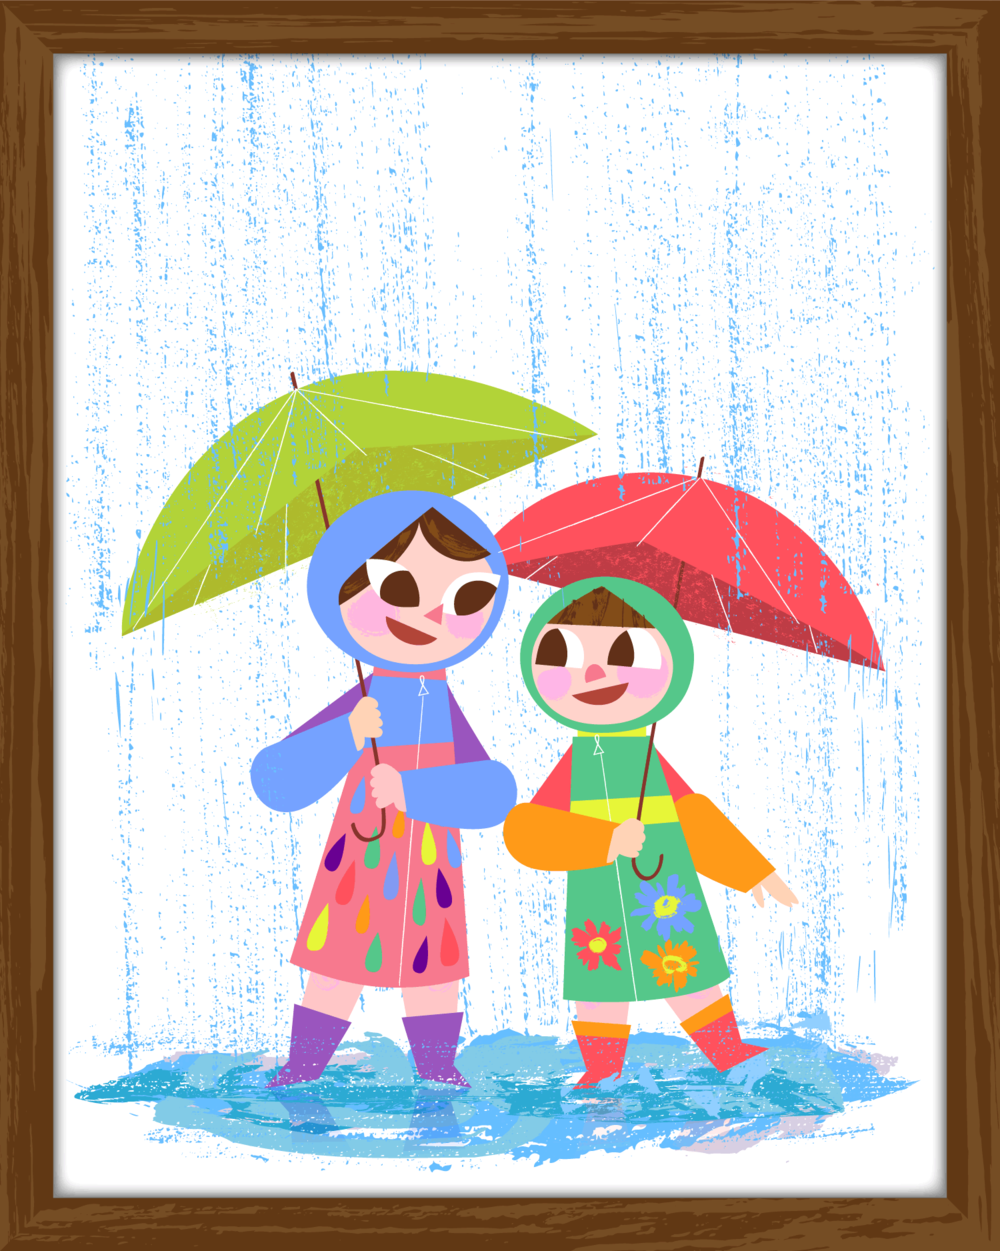 Commission: Playing in the Rain